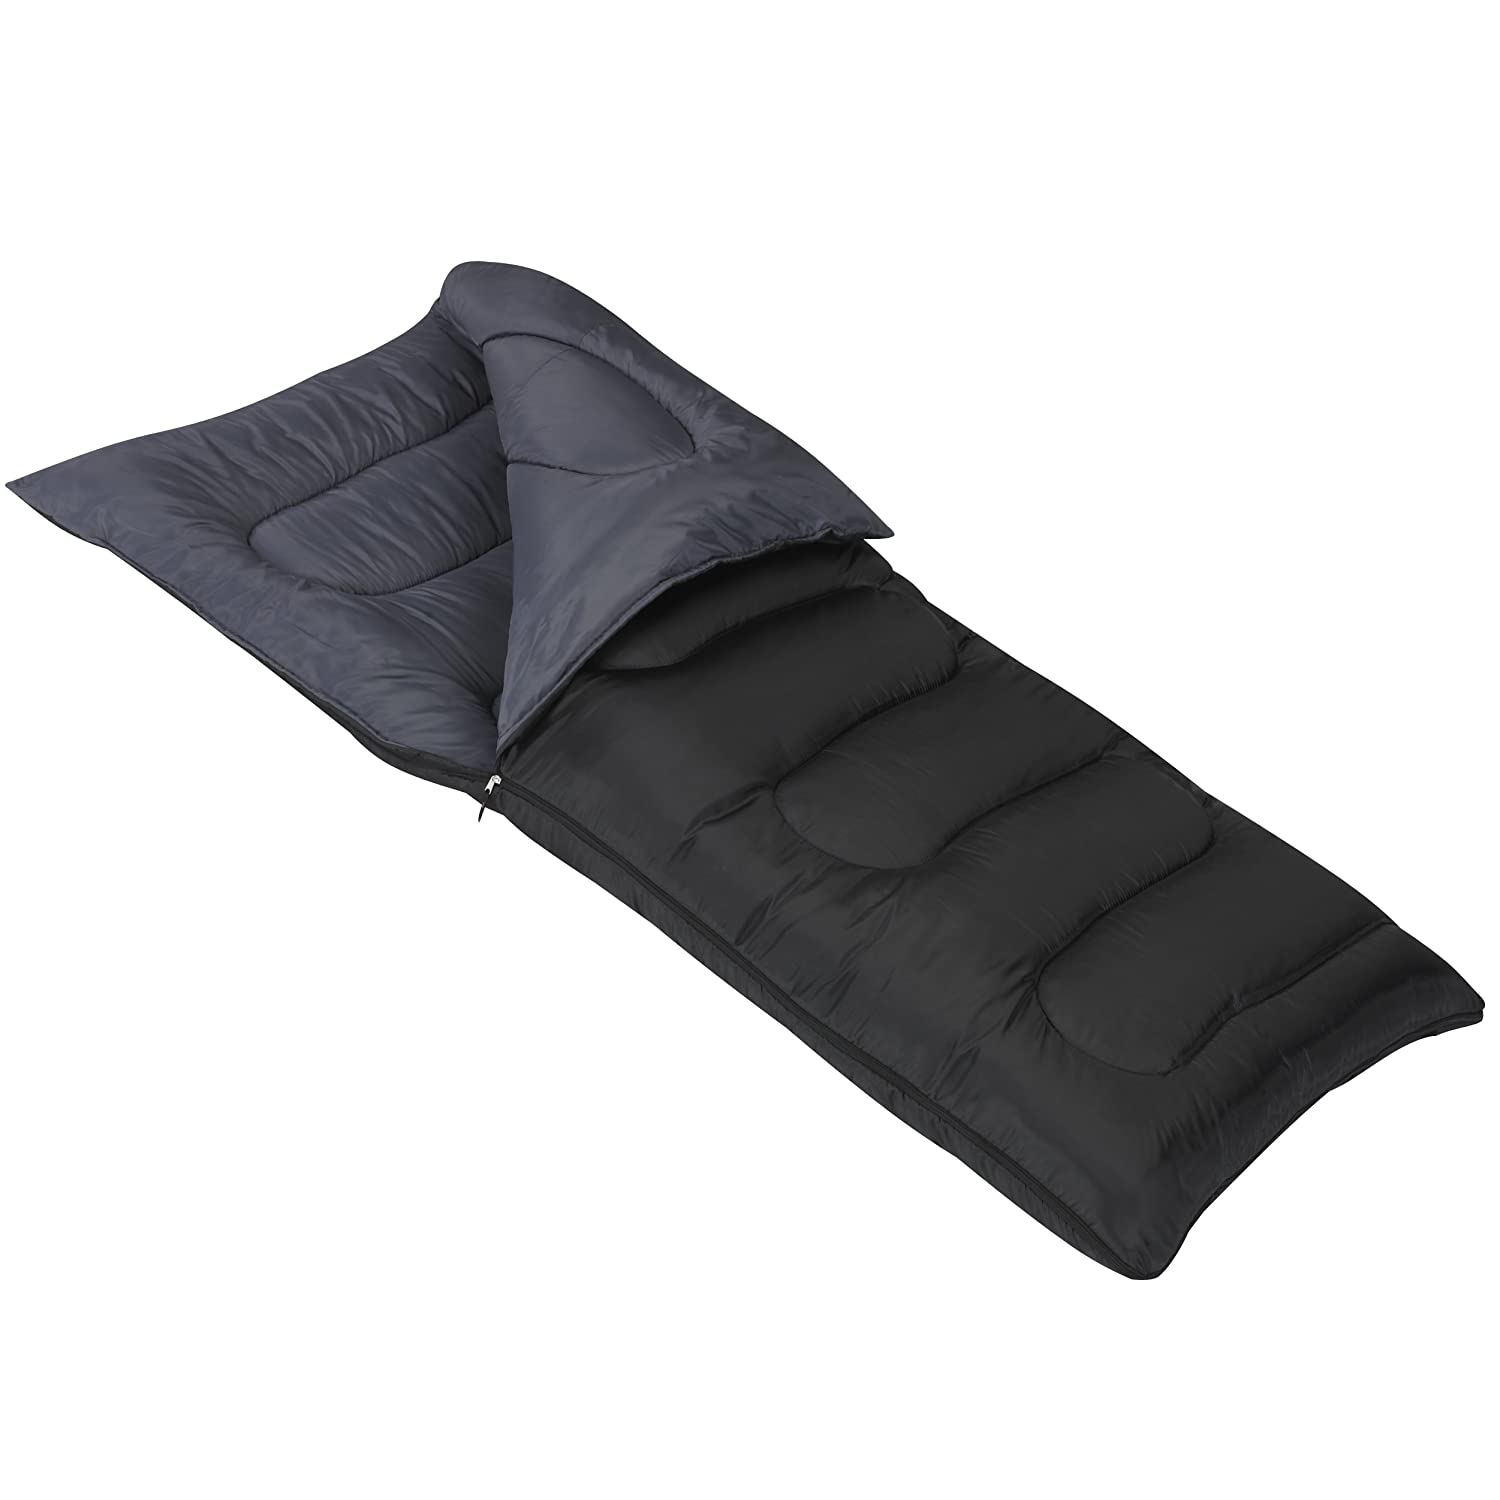 Mountain Trails Allegheny 25-Degree Sleeping Bag, Black